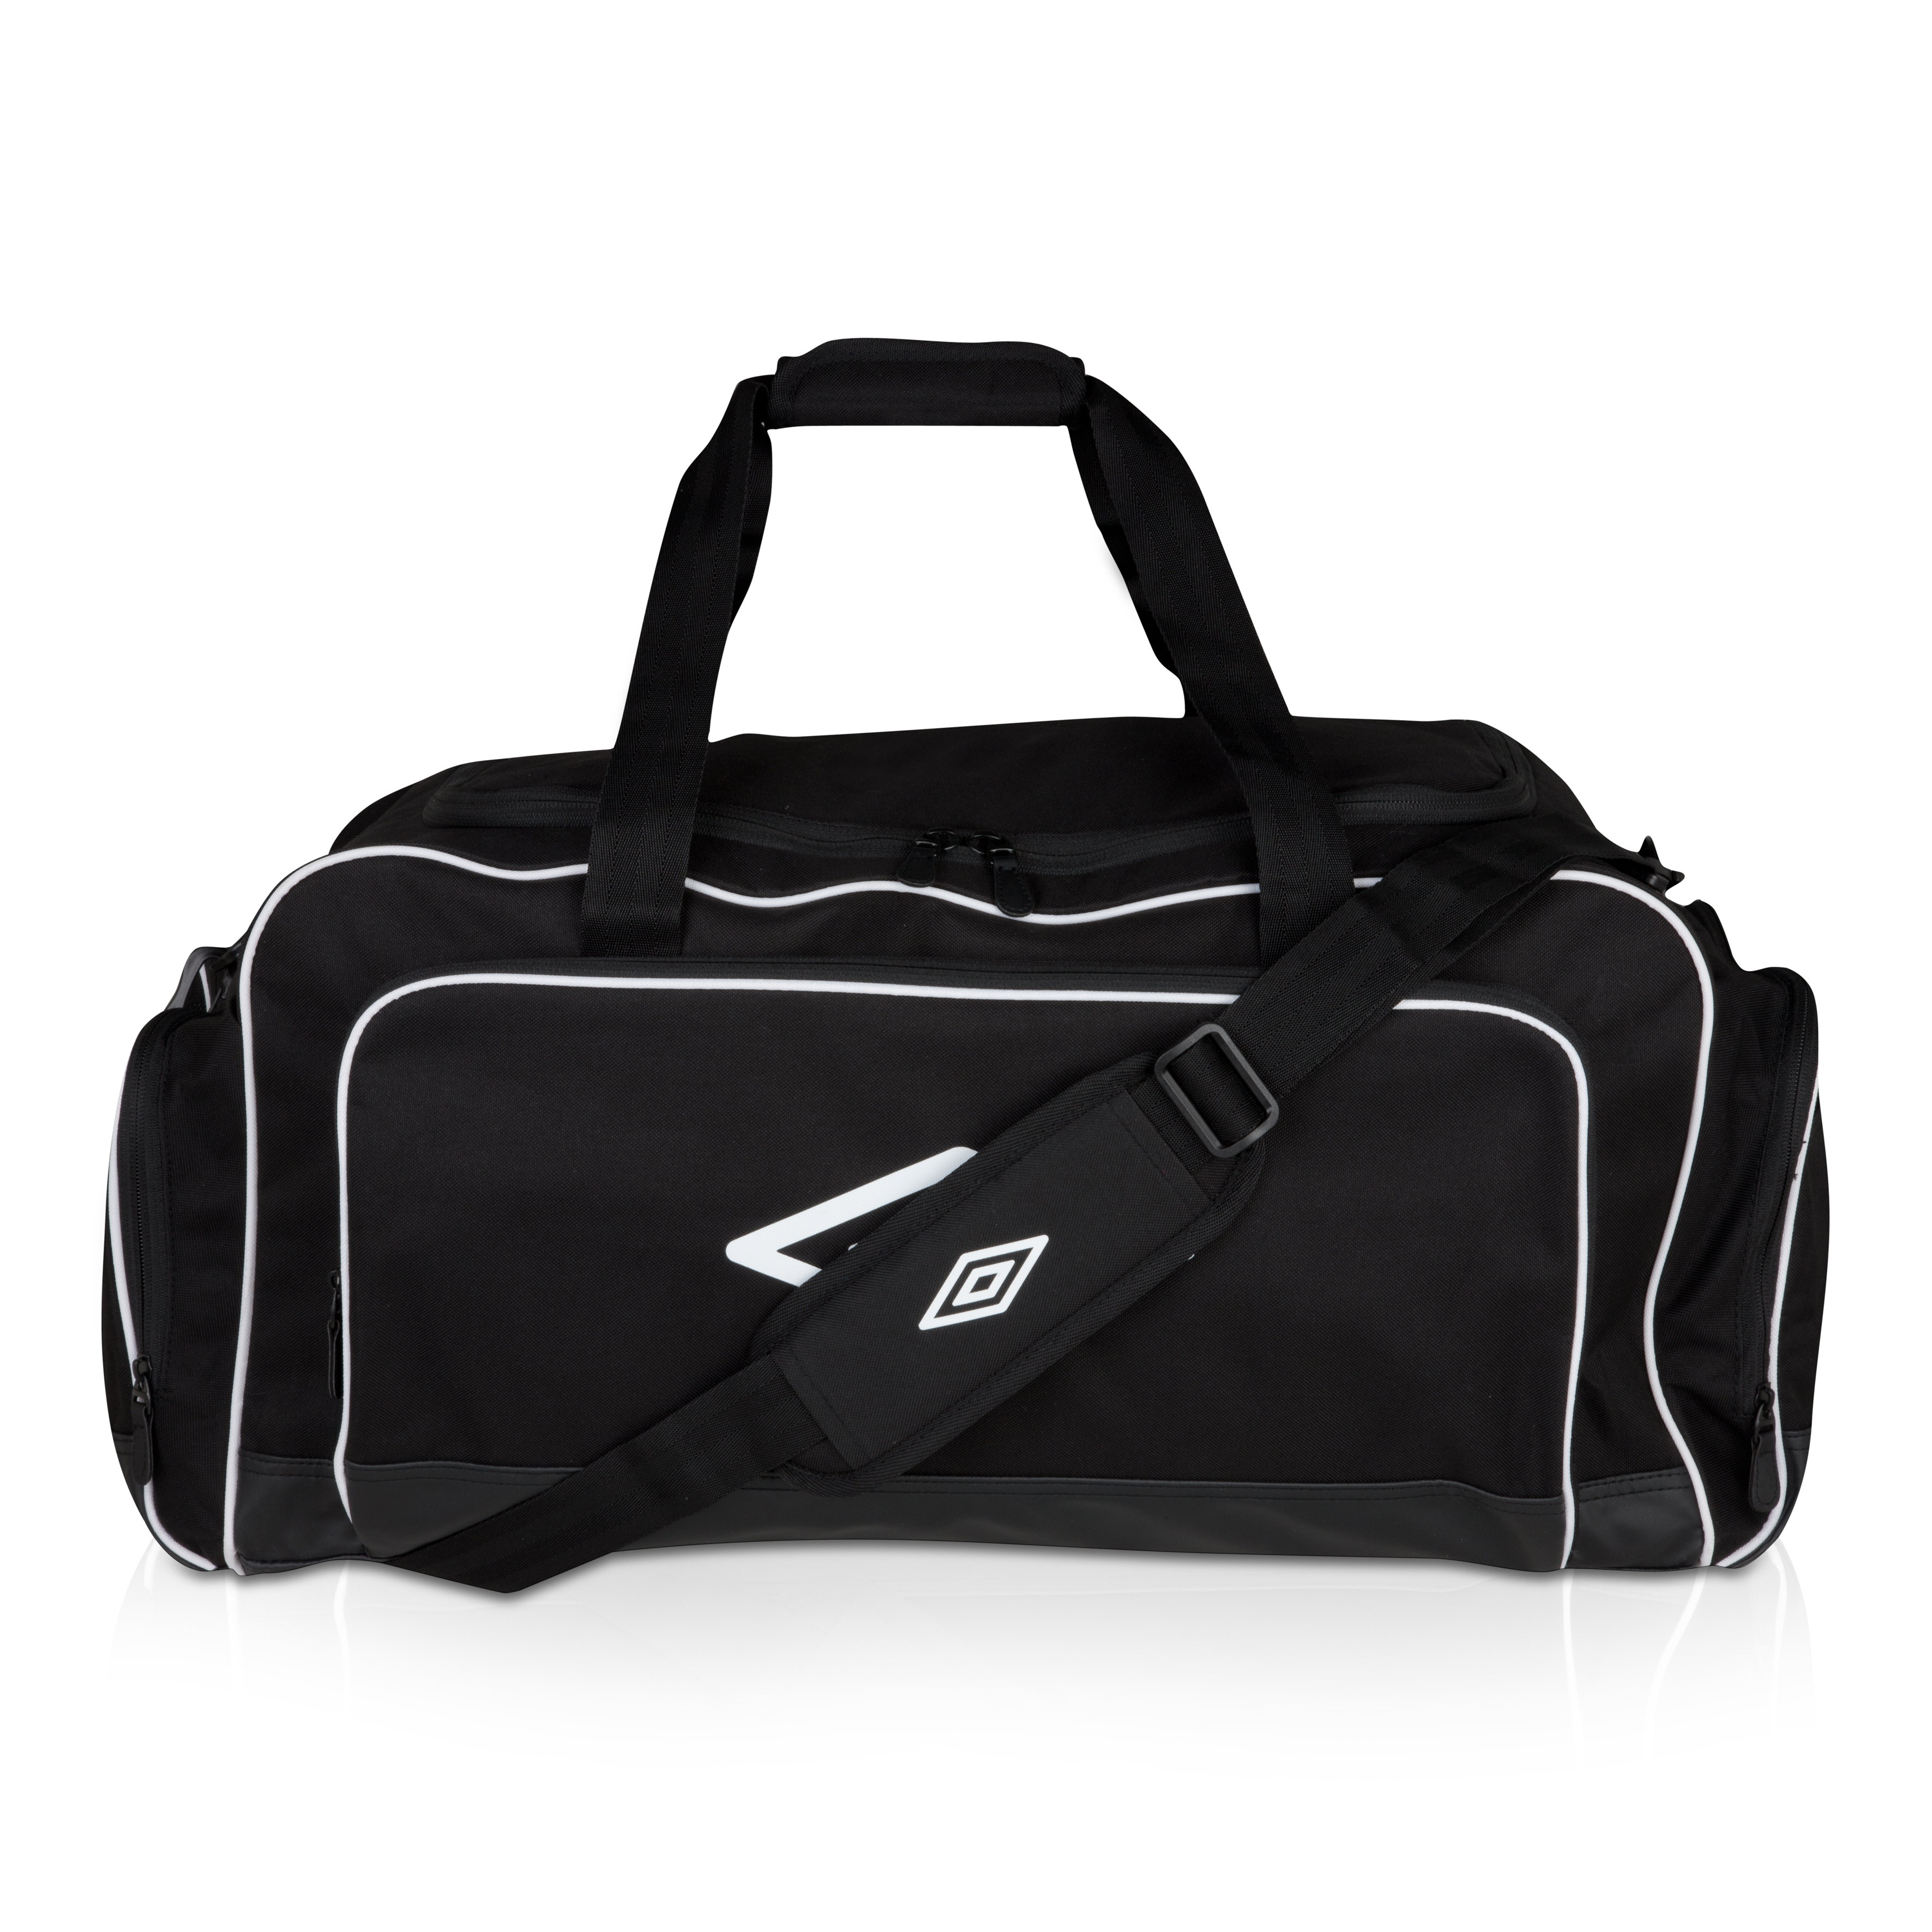 Umbro Medium Holdall - Black / White